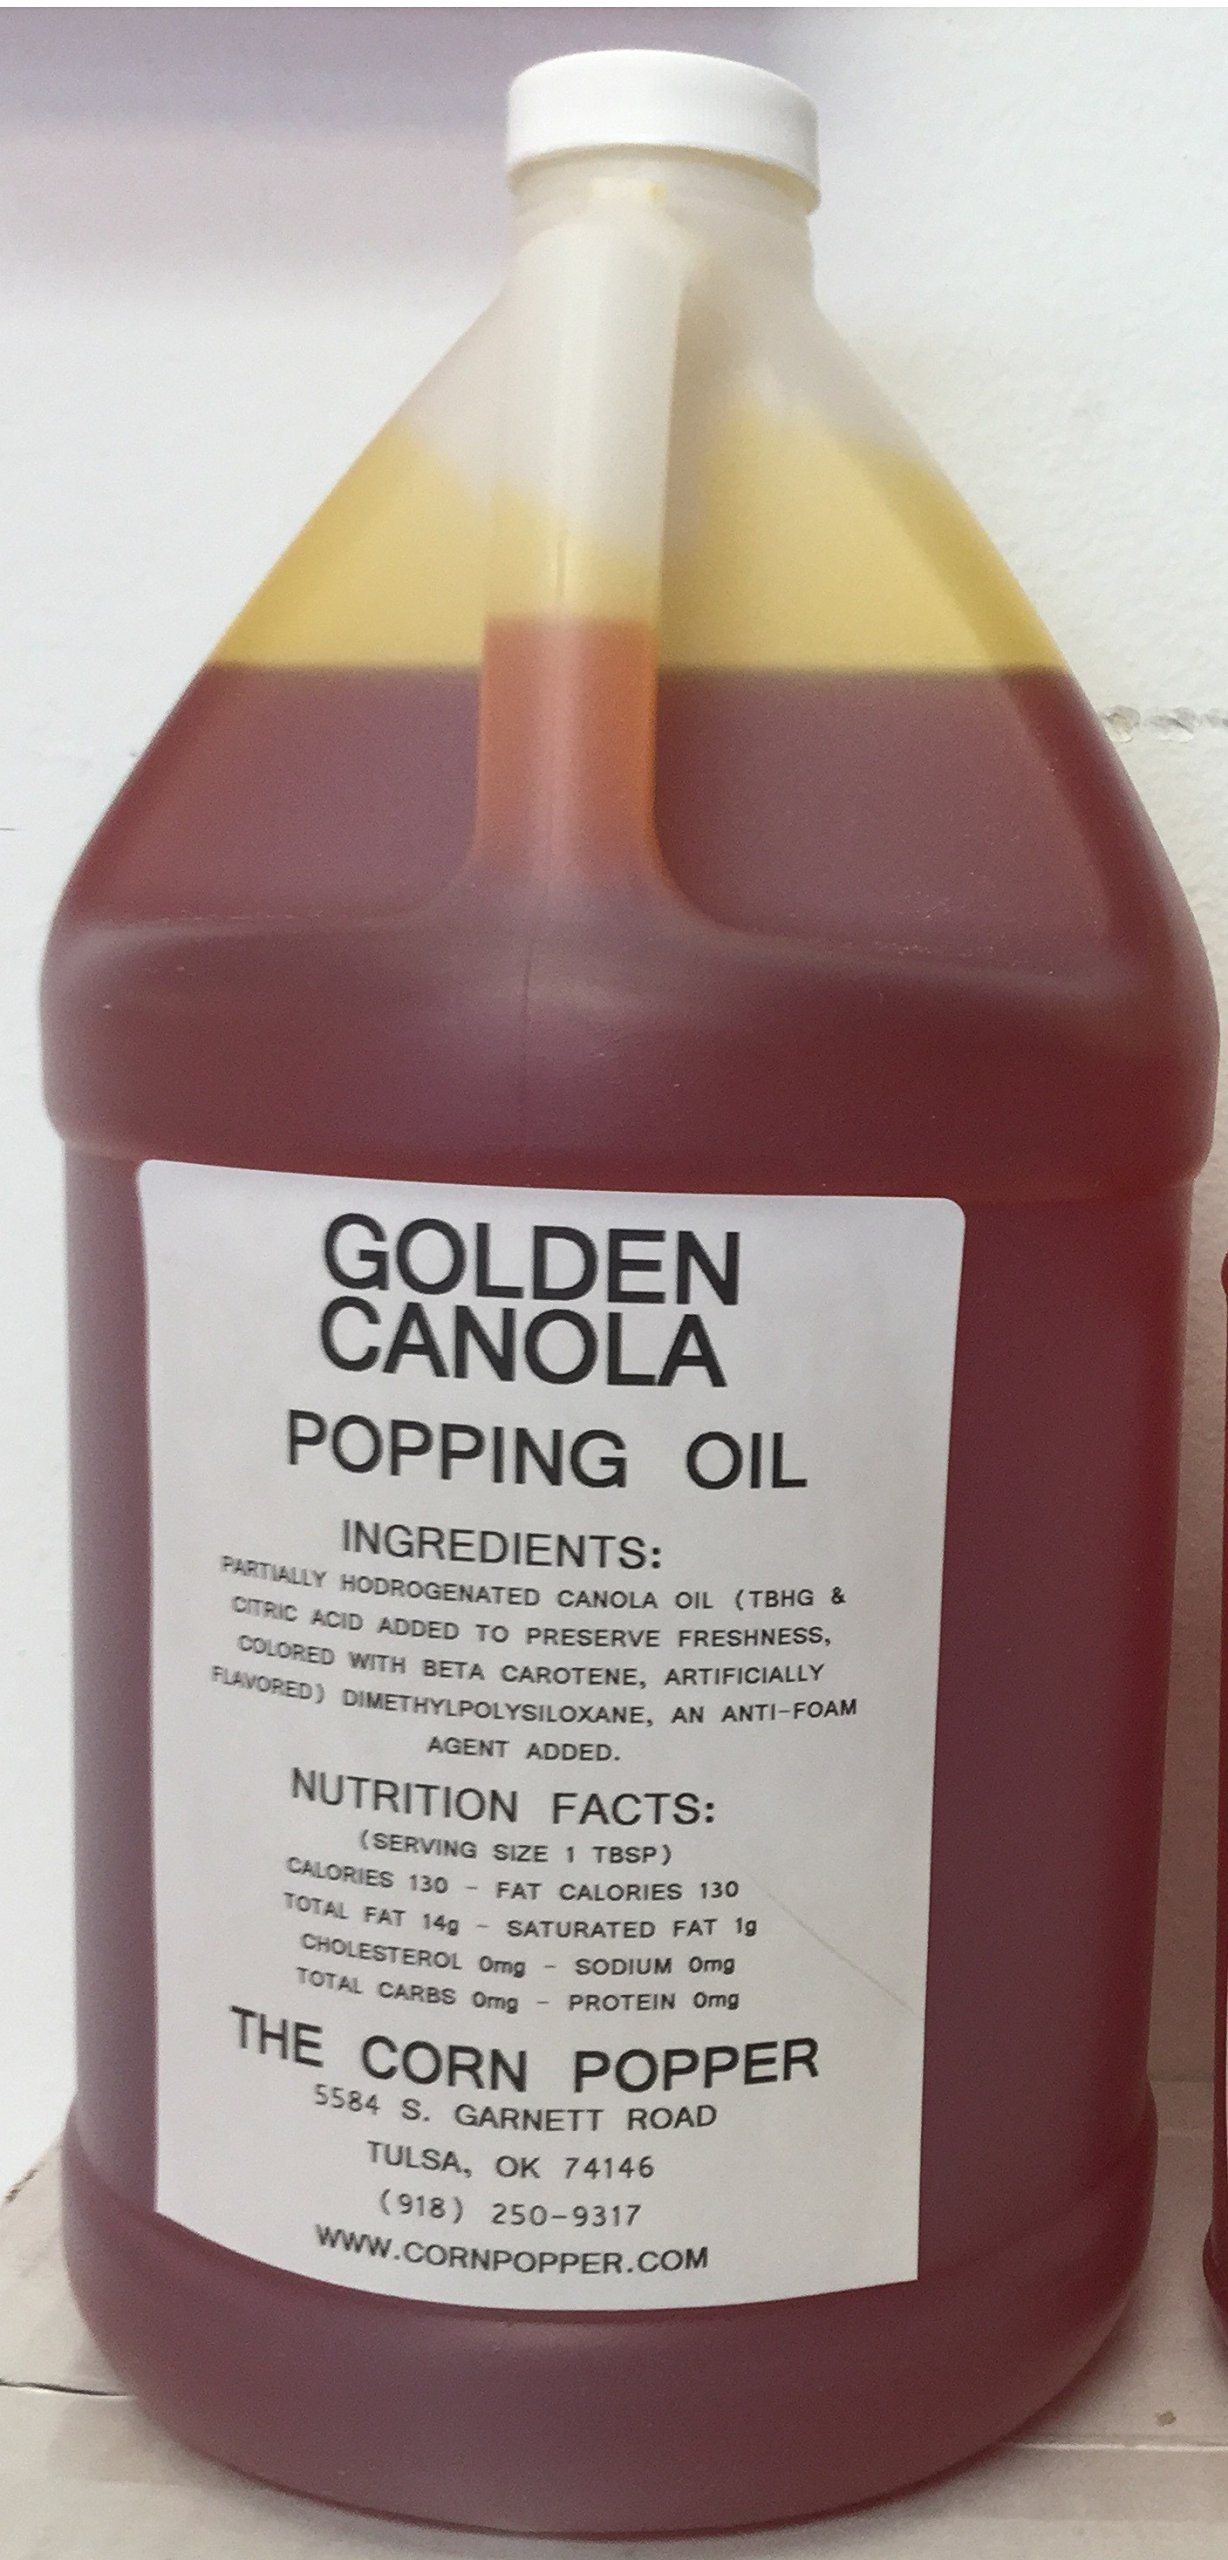 Golden Canola Popcorn Popping Oil, 2-gallon Case by The Corn Popper